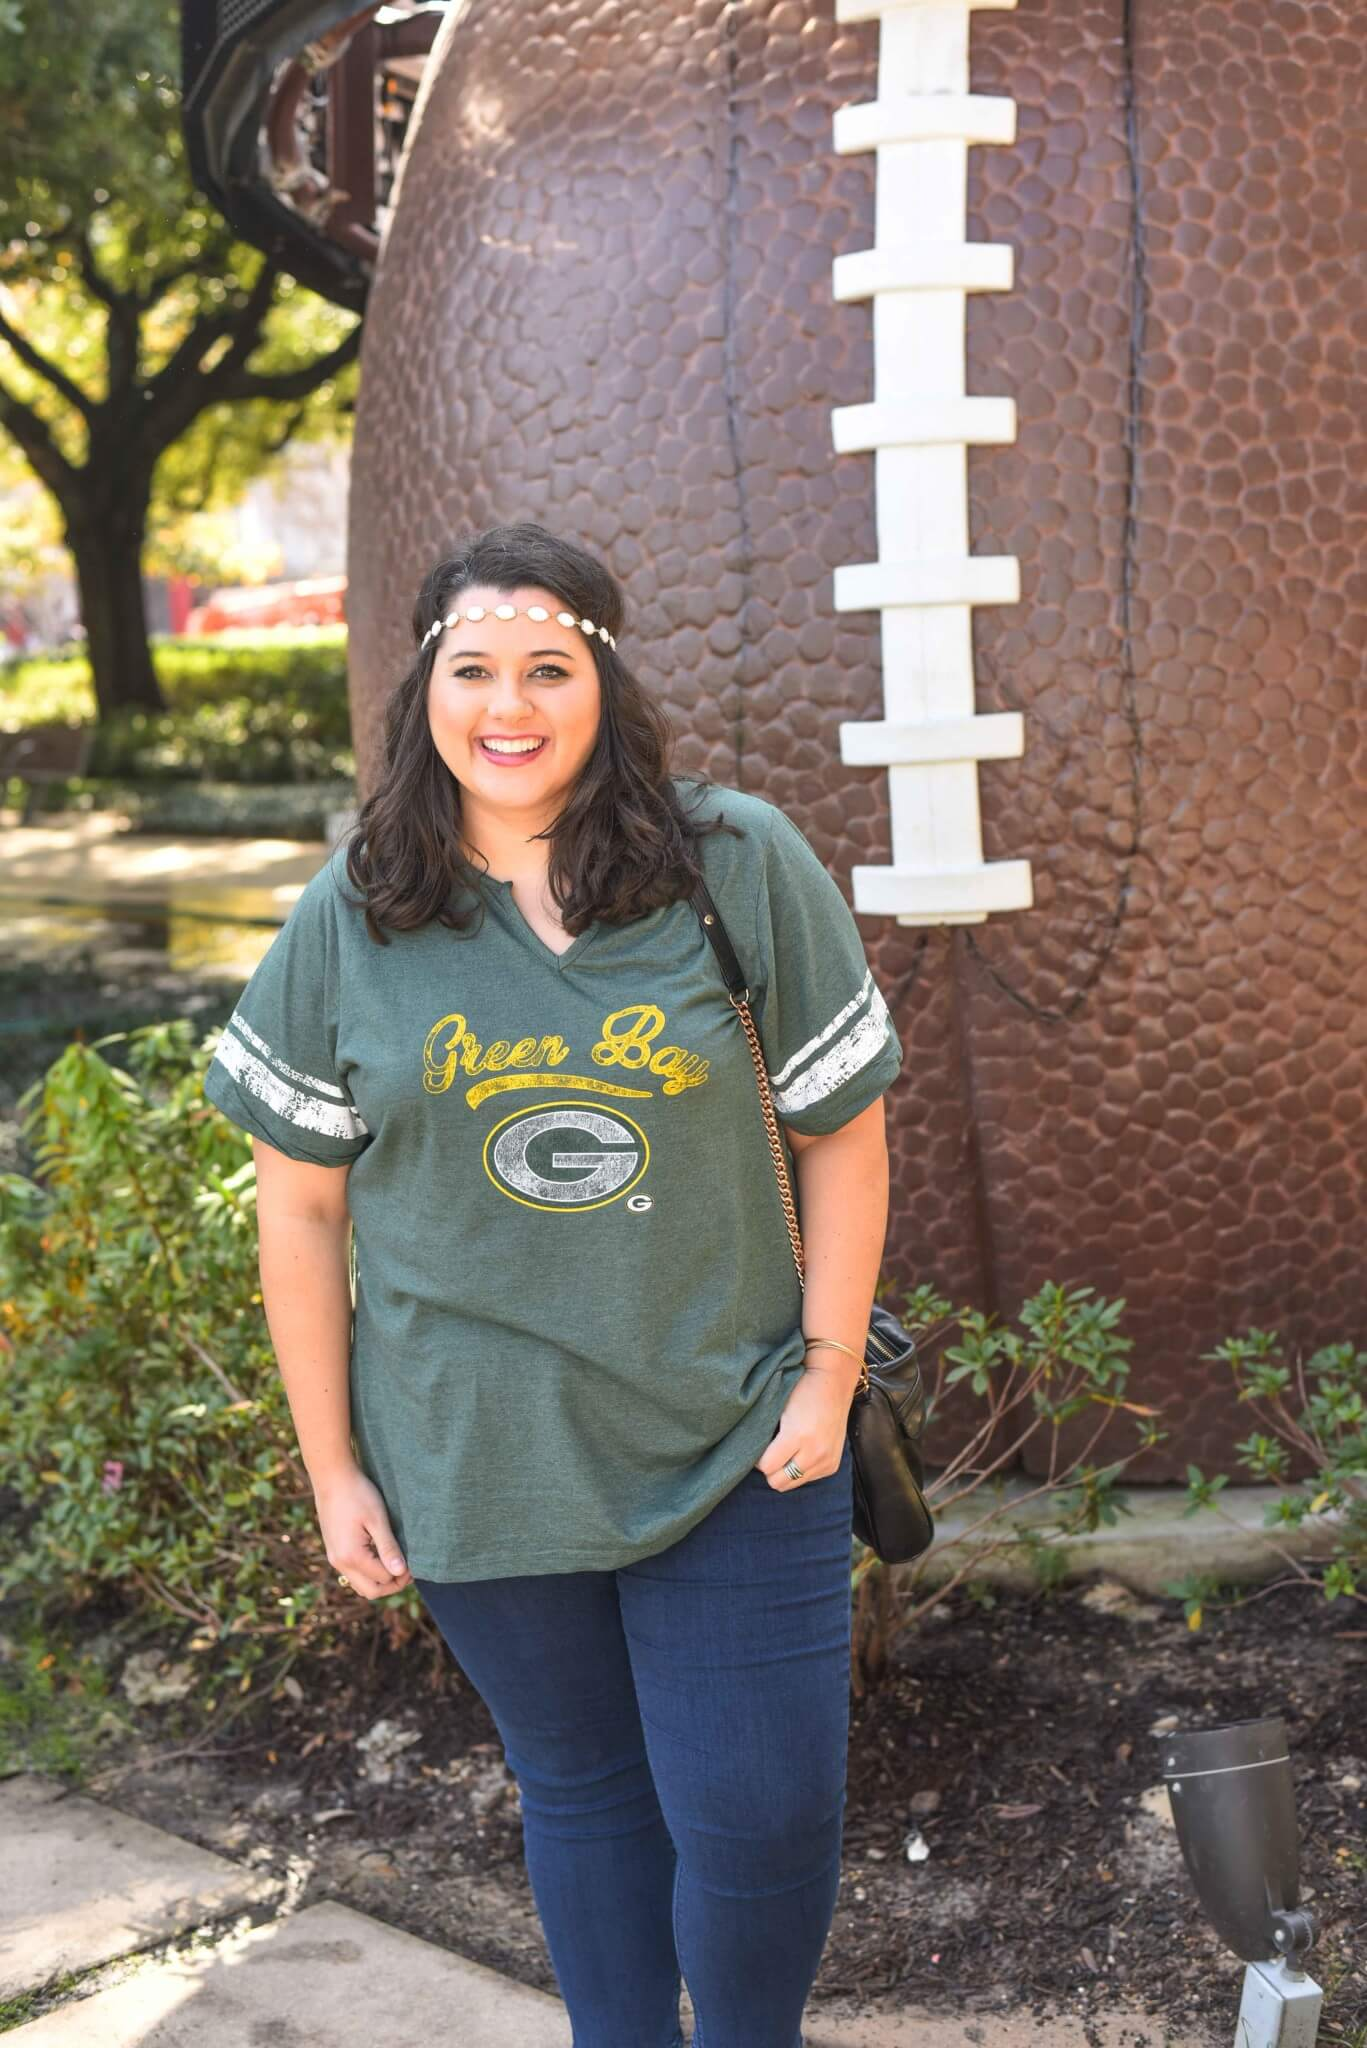 Packers Football Game Day Outfit - I wish the Green Bay Packers would have made it to the Super Bowl here in Houston. I'm still supporting my team in today's blog post by showing what to wear to the Super Bowl or what to wear to a Super Bowl party.